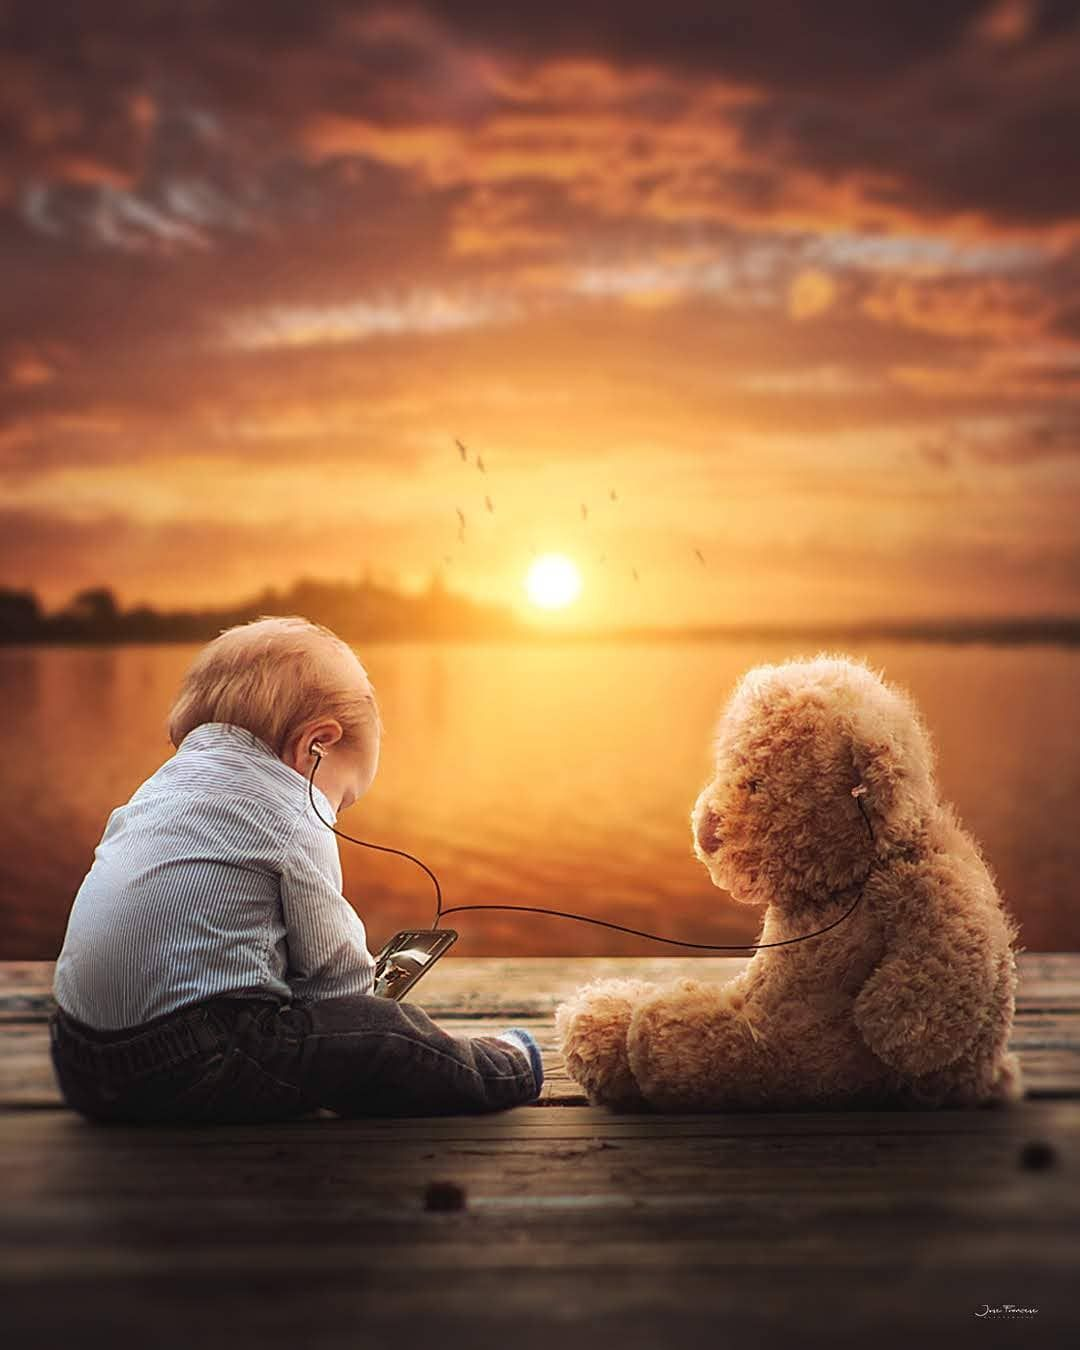 Jose Francese On Instagram Jose Francese Tag Who You D Be With Follow Cute Kids Photography Photo Stock Images